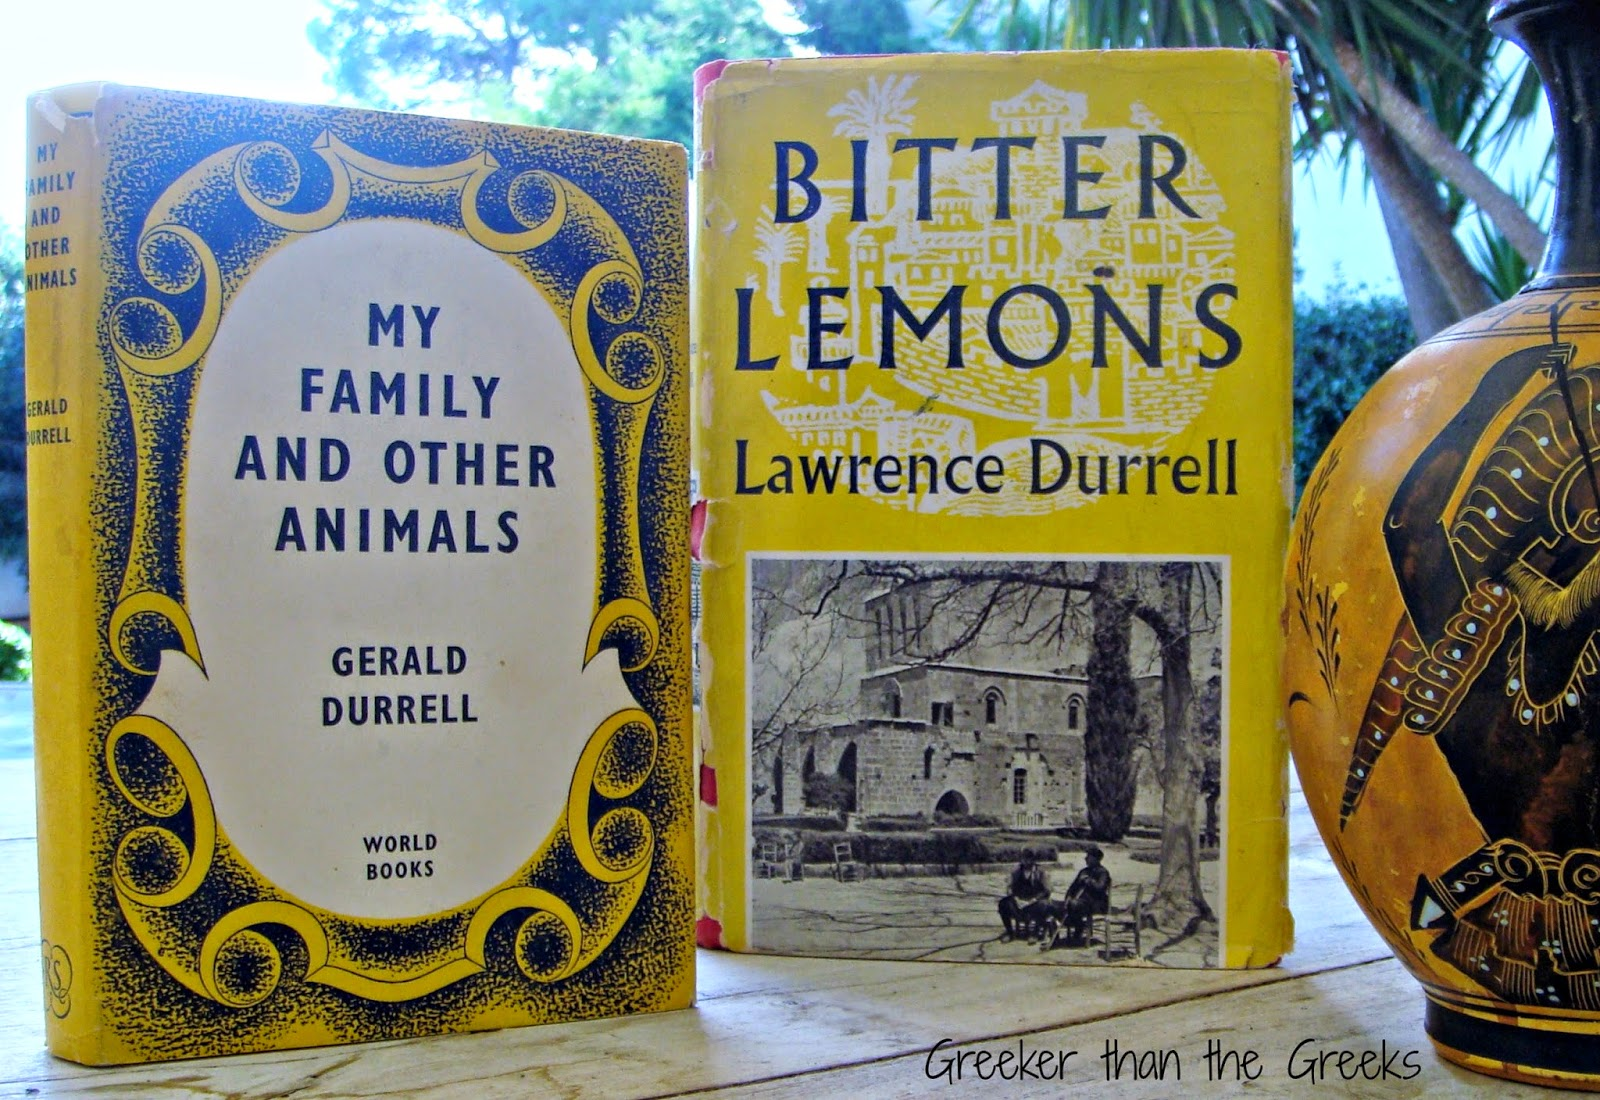 gerald and lawrence durrell